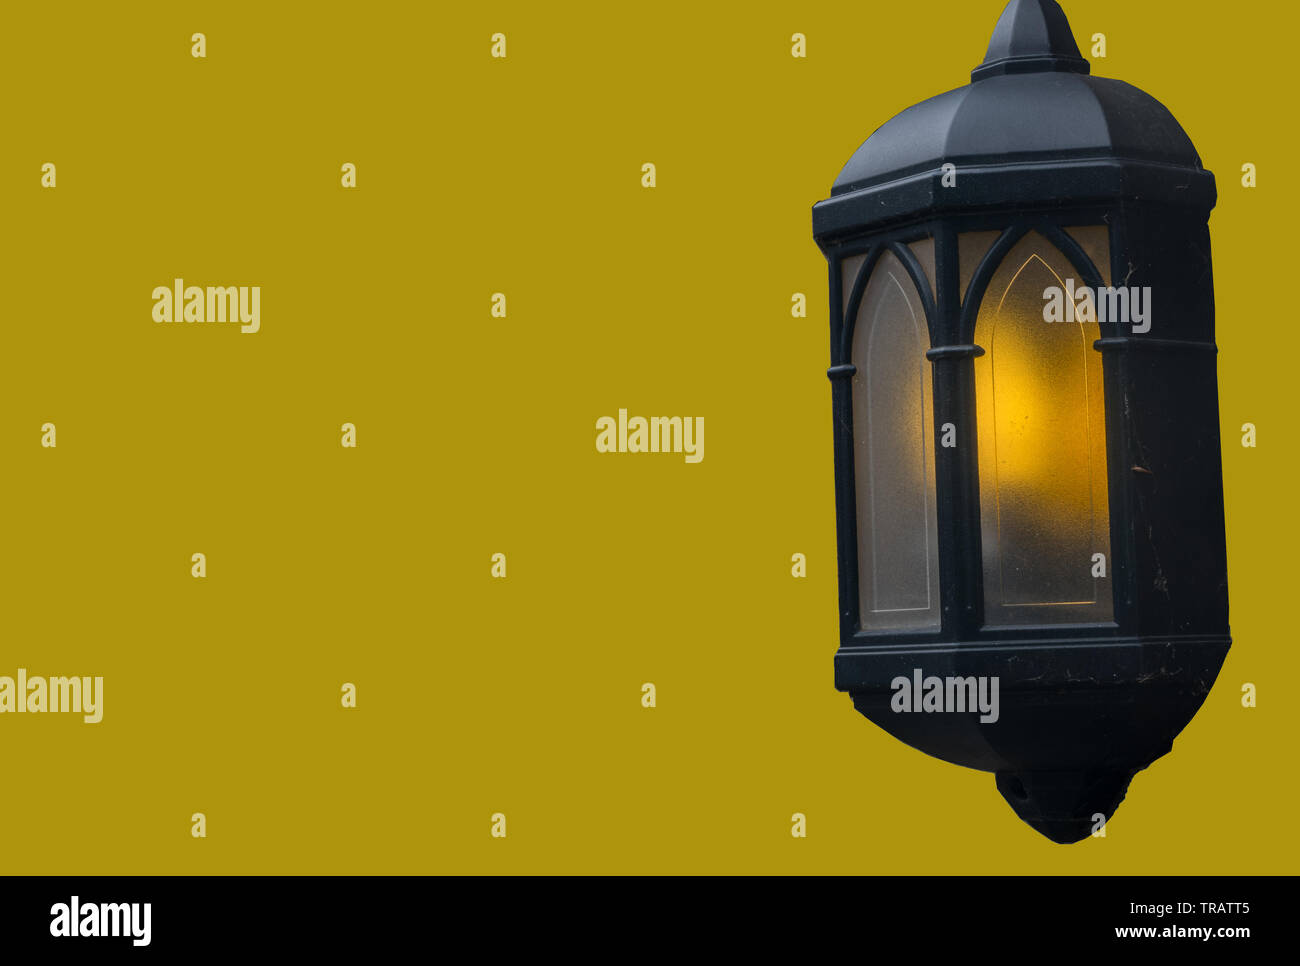 Lamps illuminate the evening attached to the house isolated over the yellow background. - Stock Image